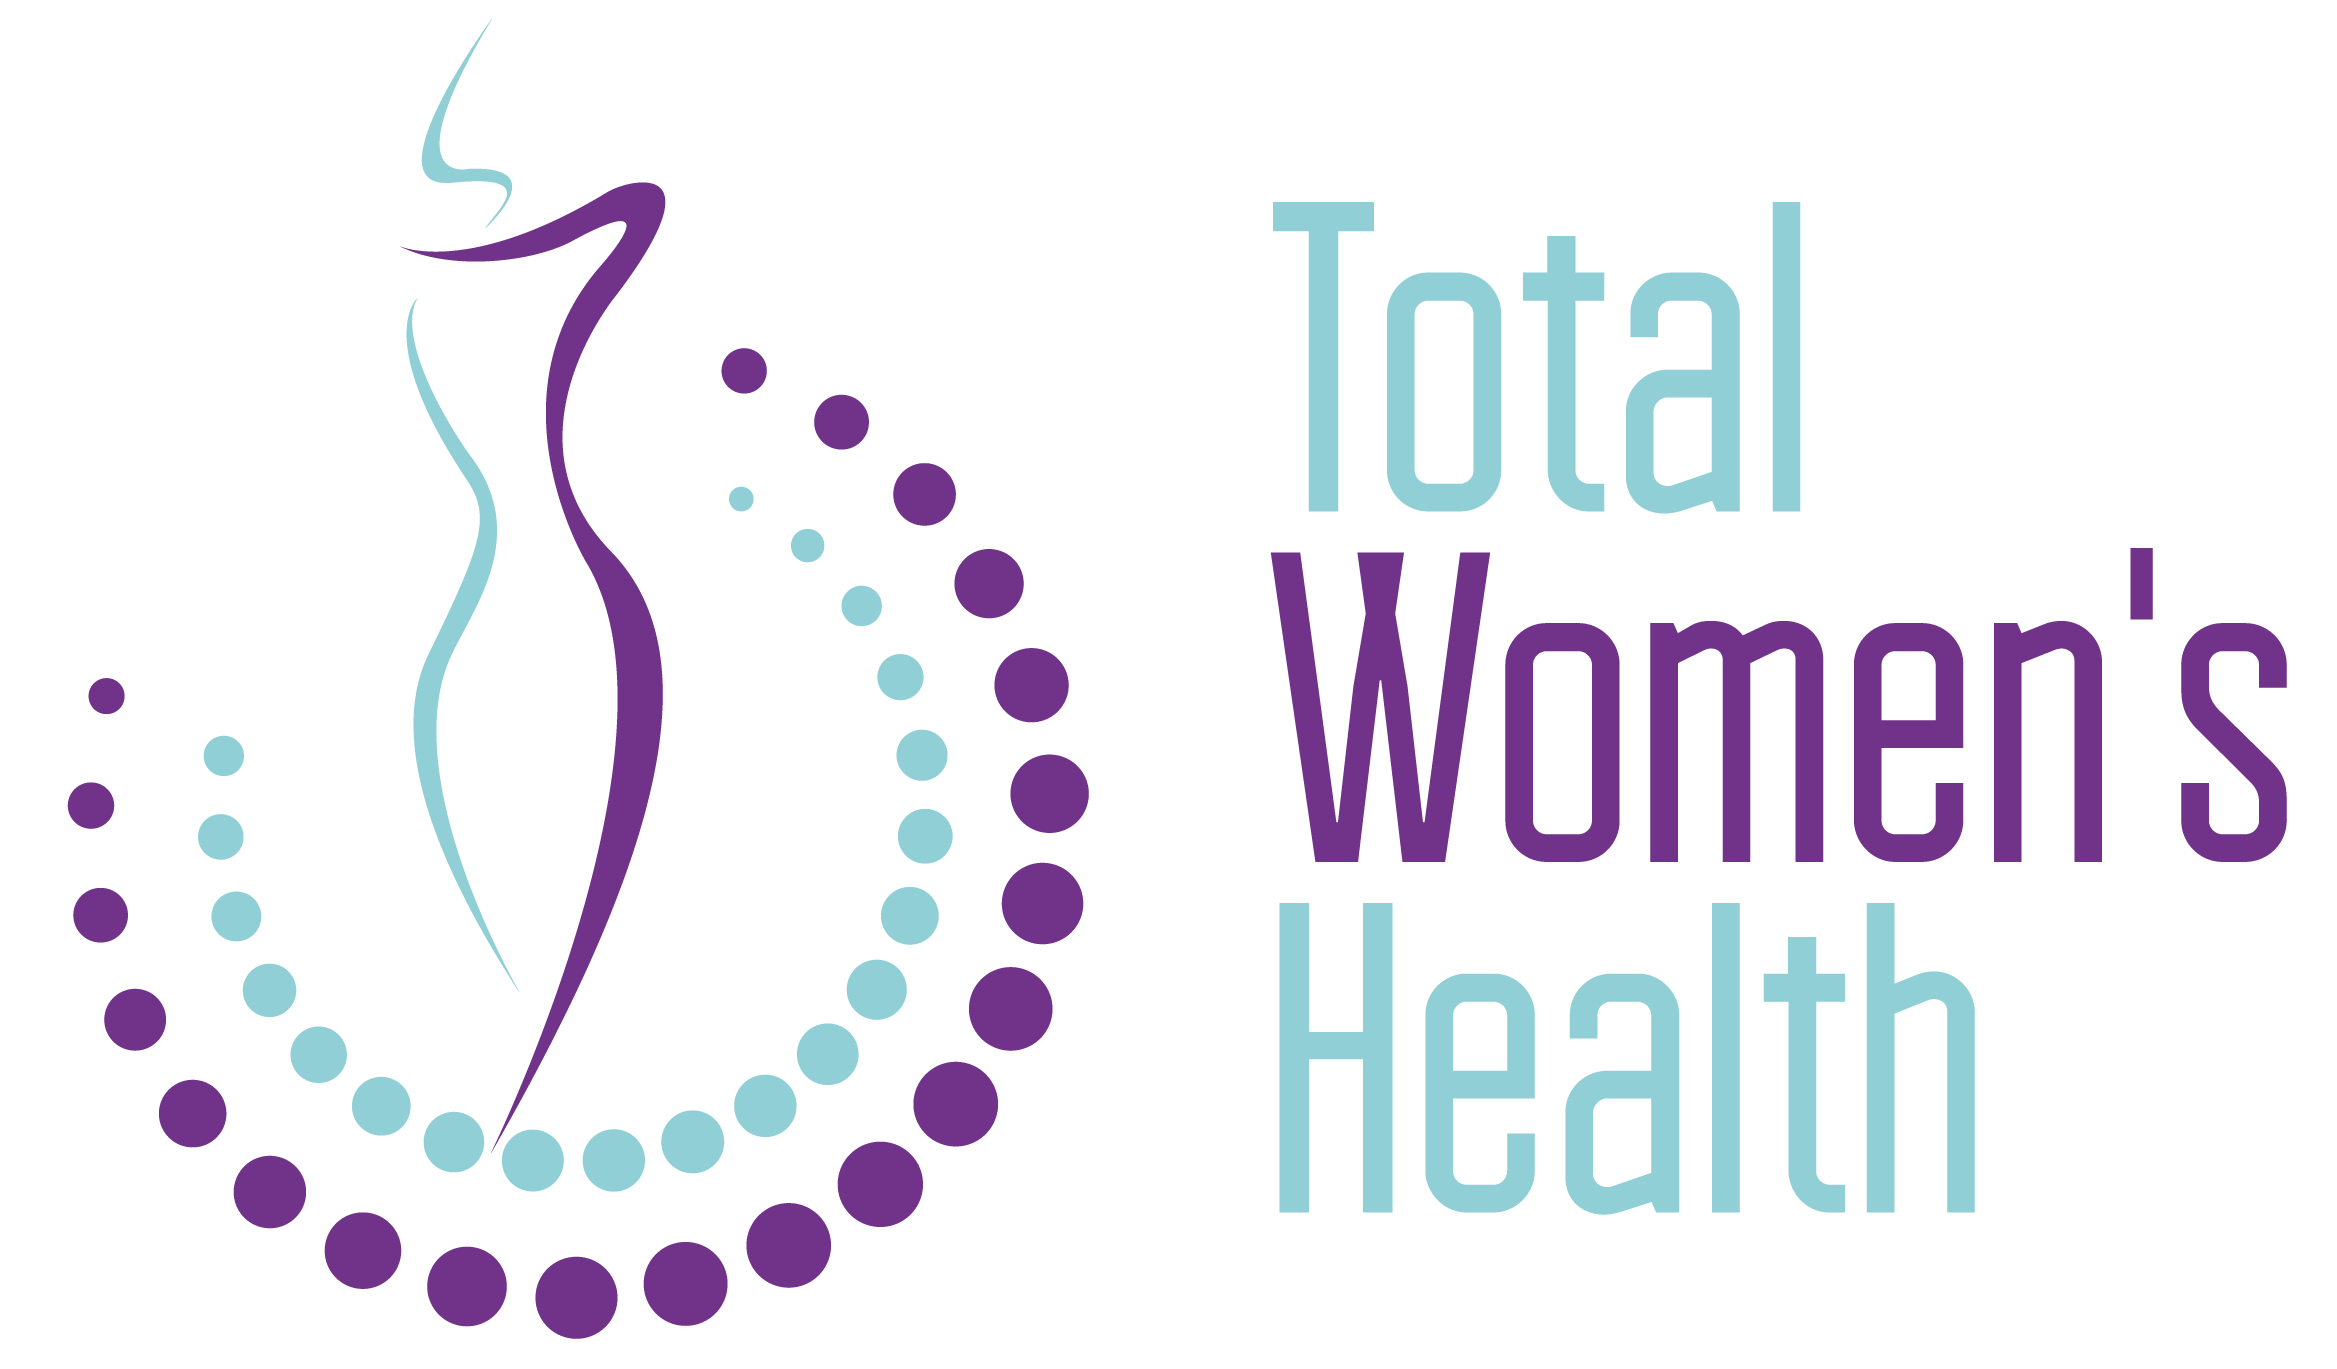 Total Women's Health